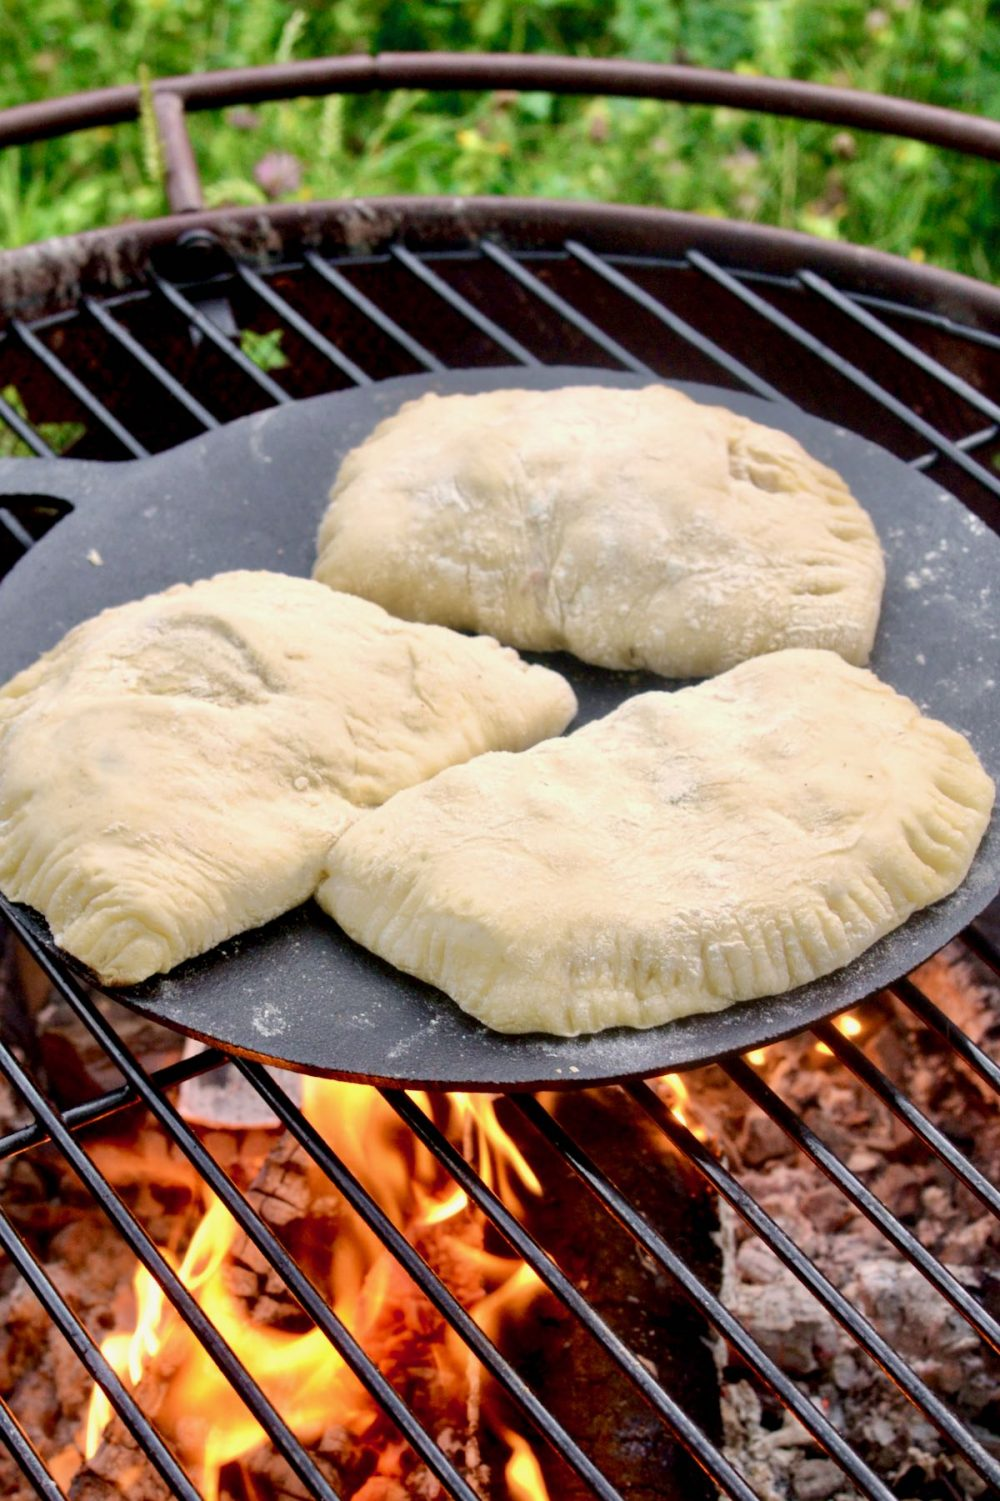 Three calzone are cooking on a cast iron baking stone set on a grill above a firepit.